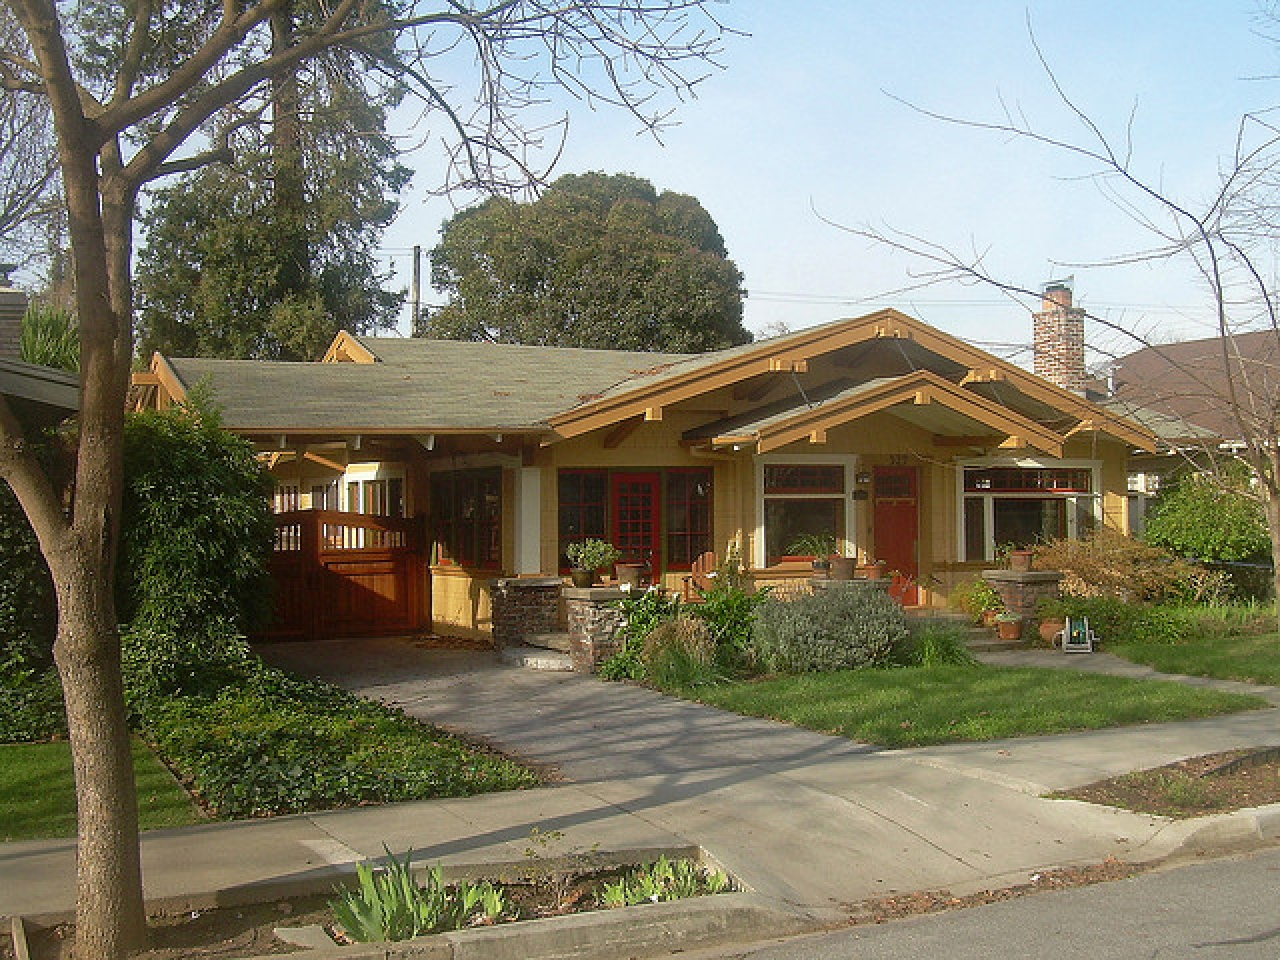 California craftsman bungalow style homes craftsman for Windows for craftsman style homes